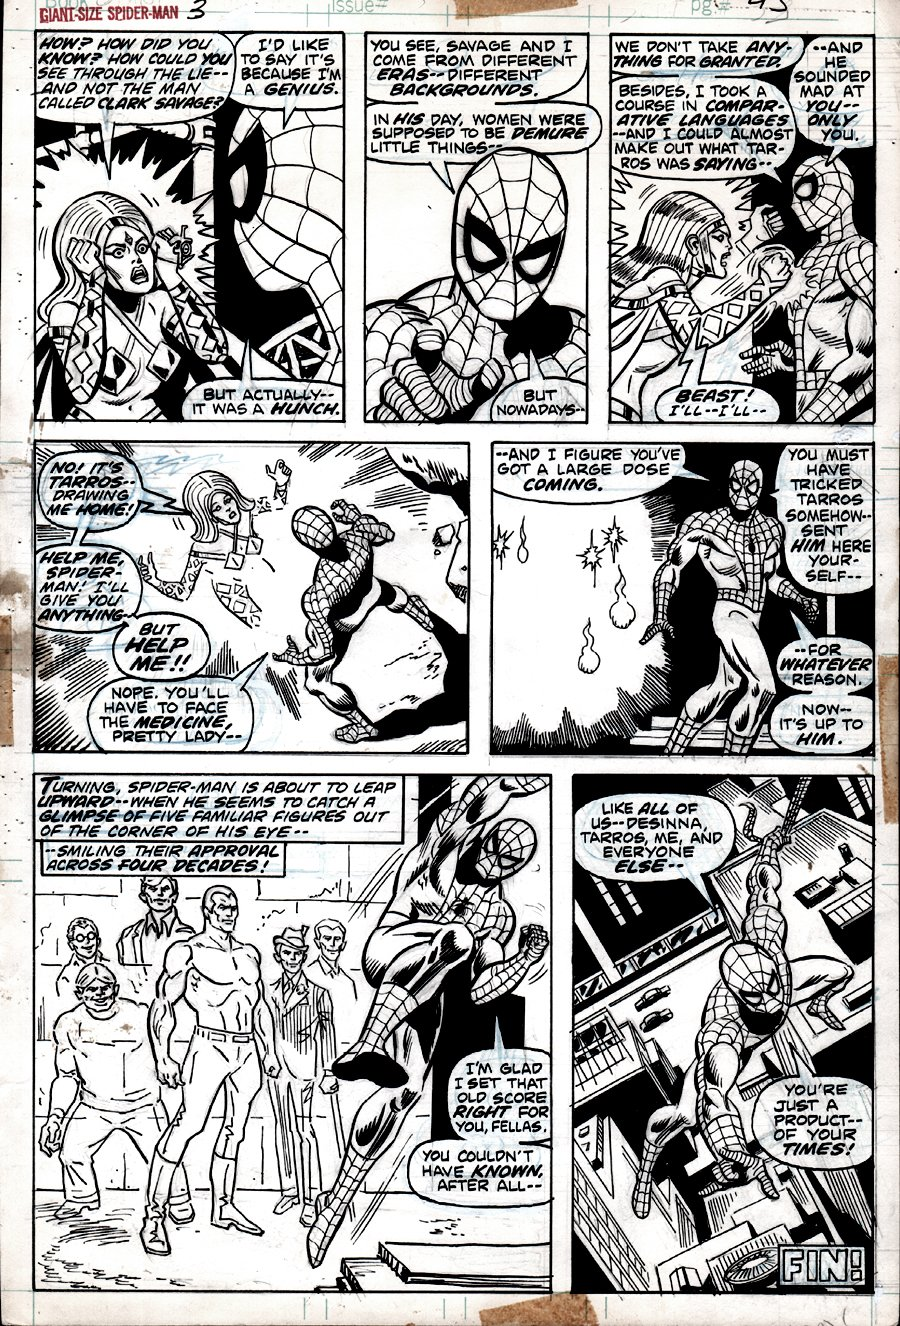 Giant-Size Spider-Man #3 p 24 (SPIDER-MAN IN ALL 7 PANELS!) 1974